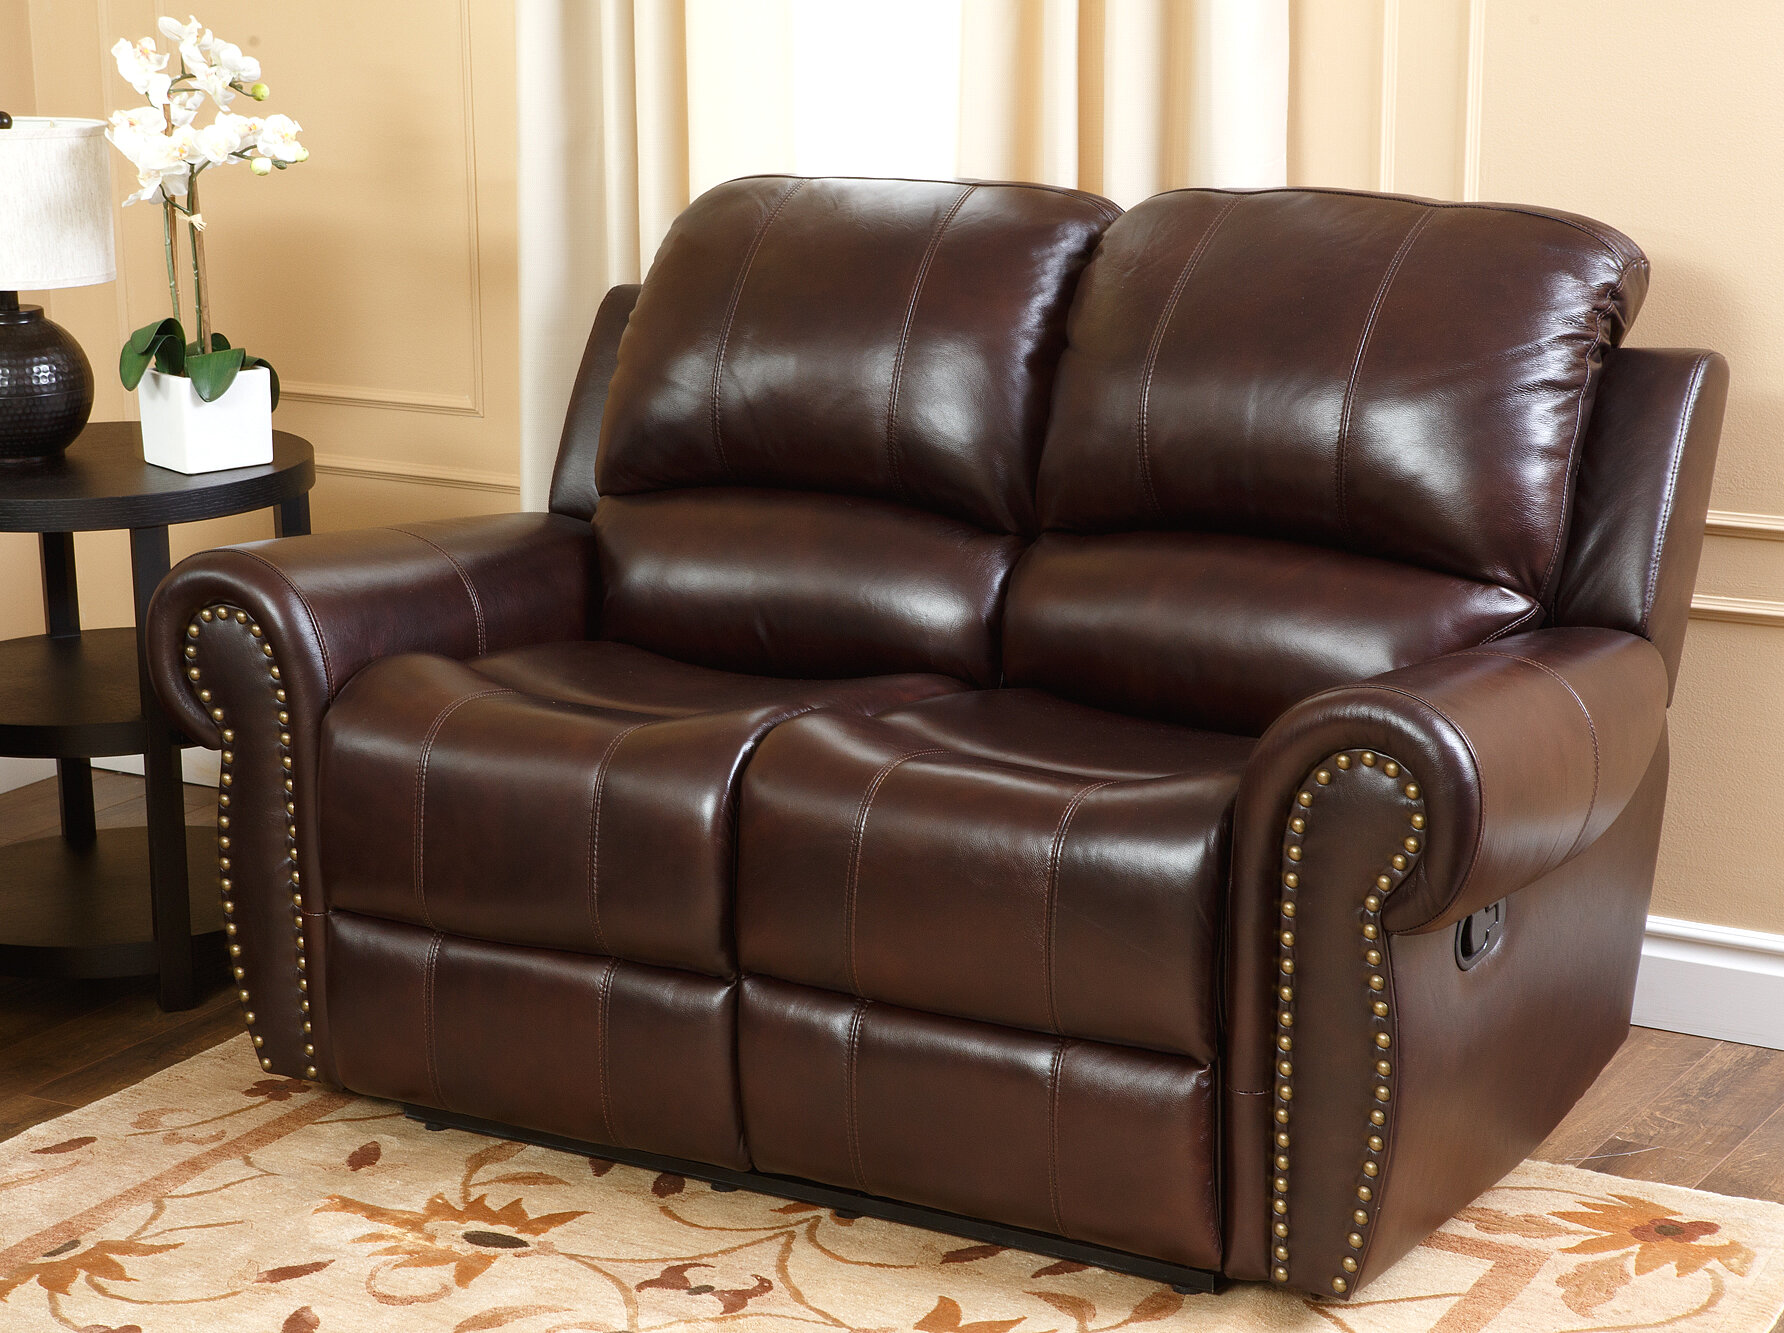 Barnsdale reclining italian leather sofa and loveseat set in two tone burgundy Leather reclining sofa loveseat